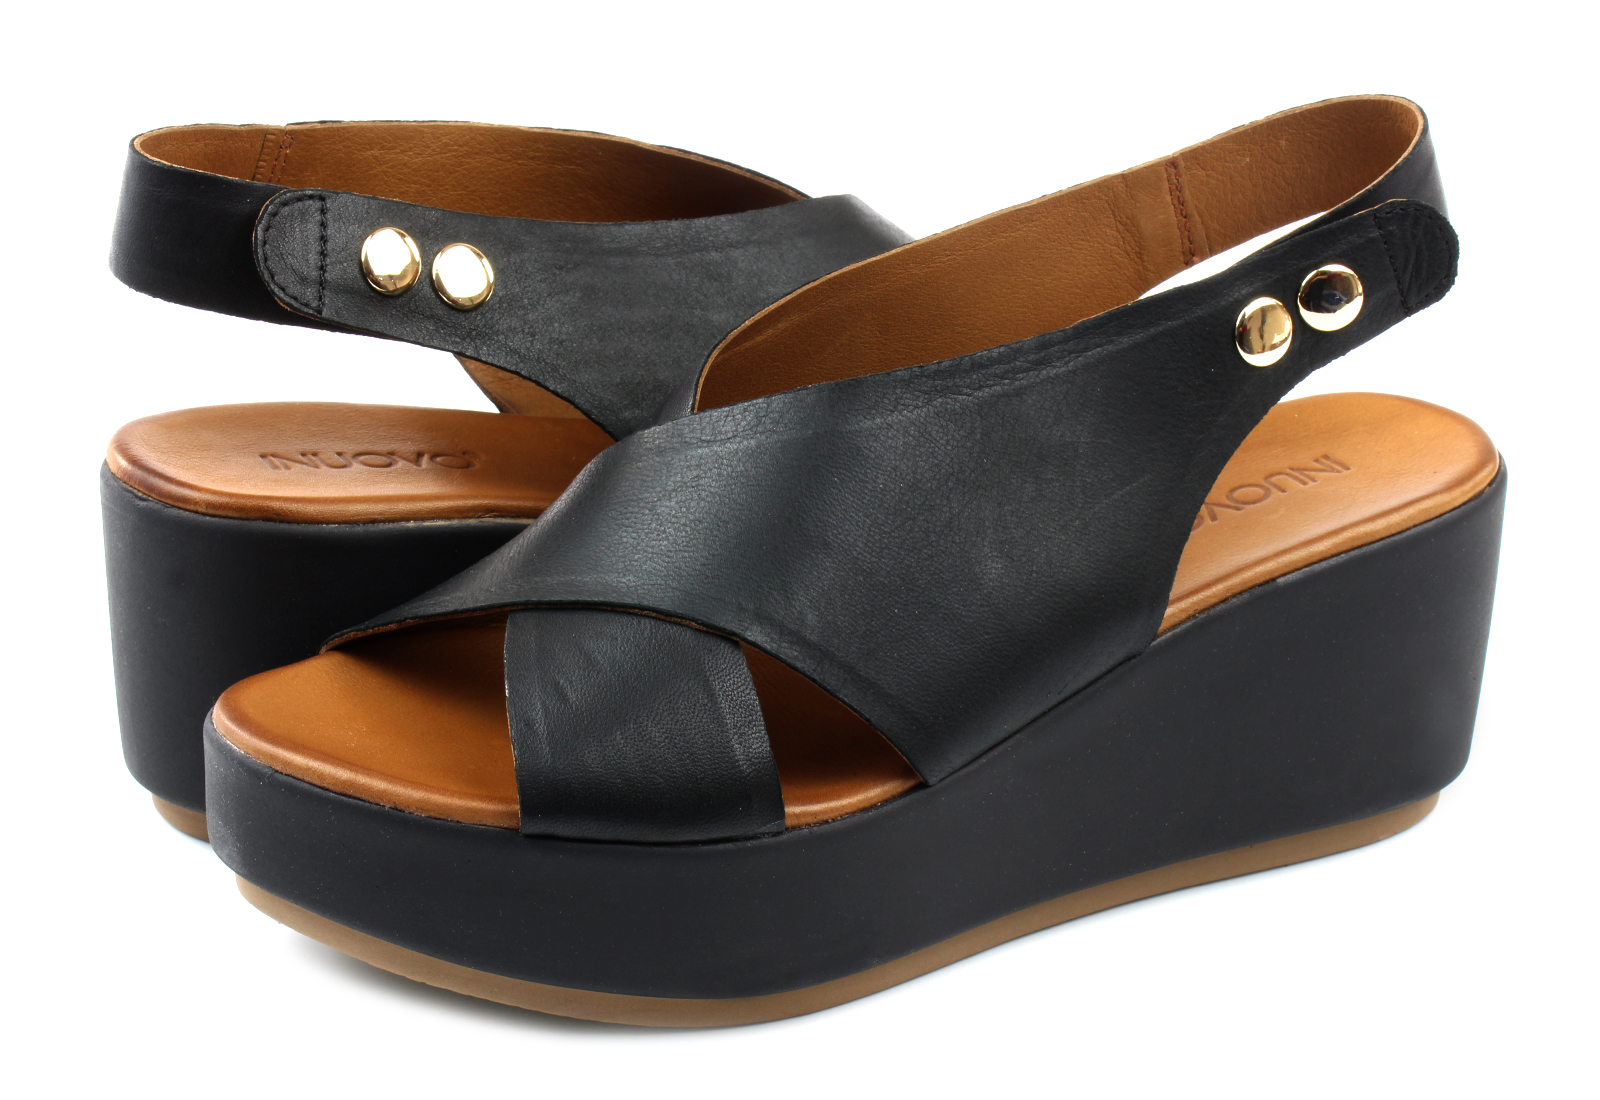 c5aebb42927 Inuovo Sandals - 8697 - 8697-blk - Online shop for sneakers